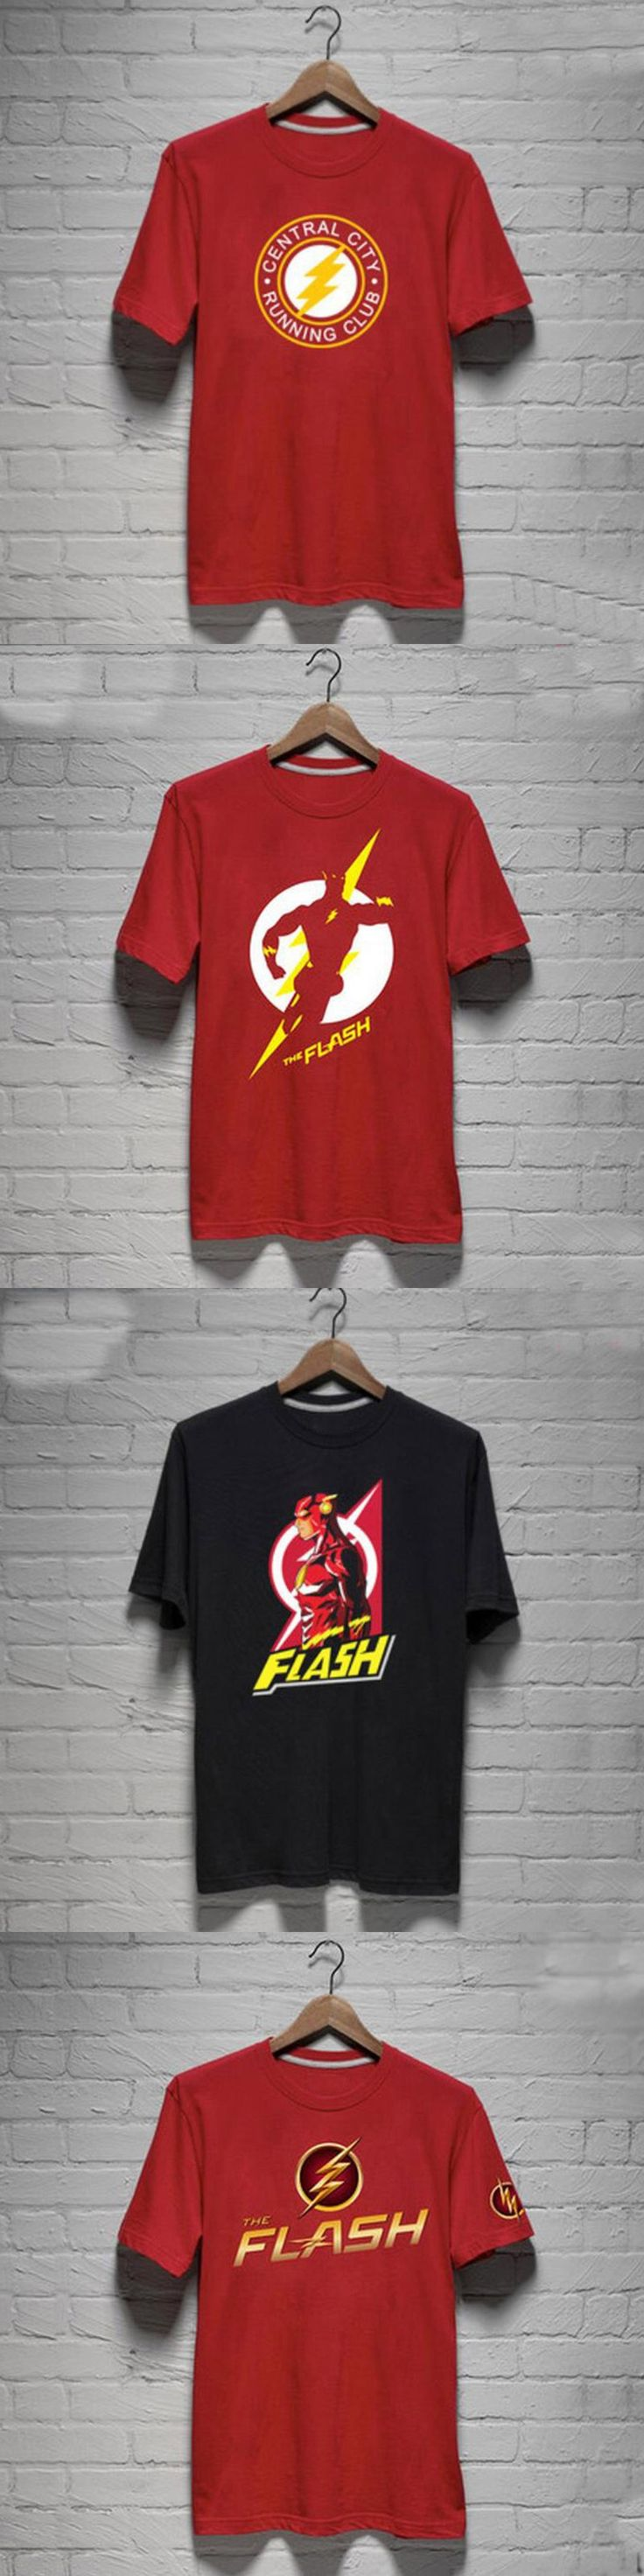 Flash Gordon Retro 80s T-Shirt  Stag Fancy Dress Queen Freddie Mercury Shirt US standard plus size factory outlet wholesale